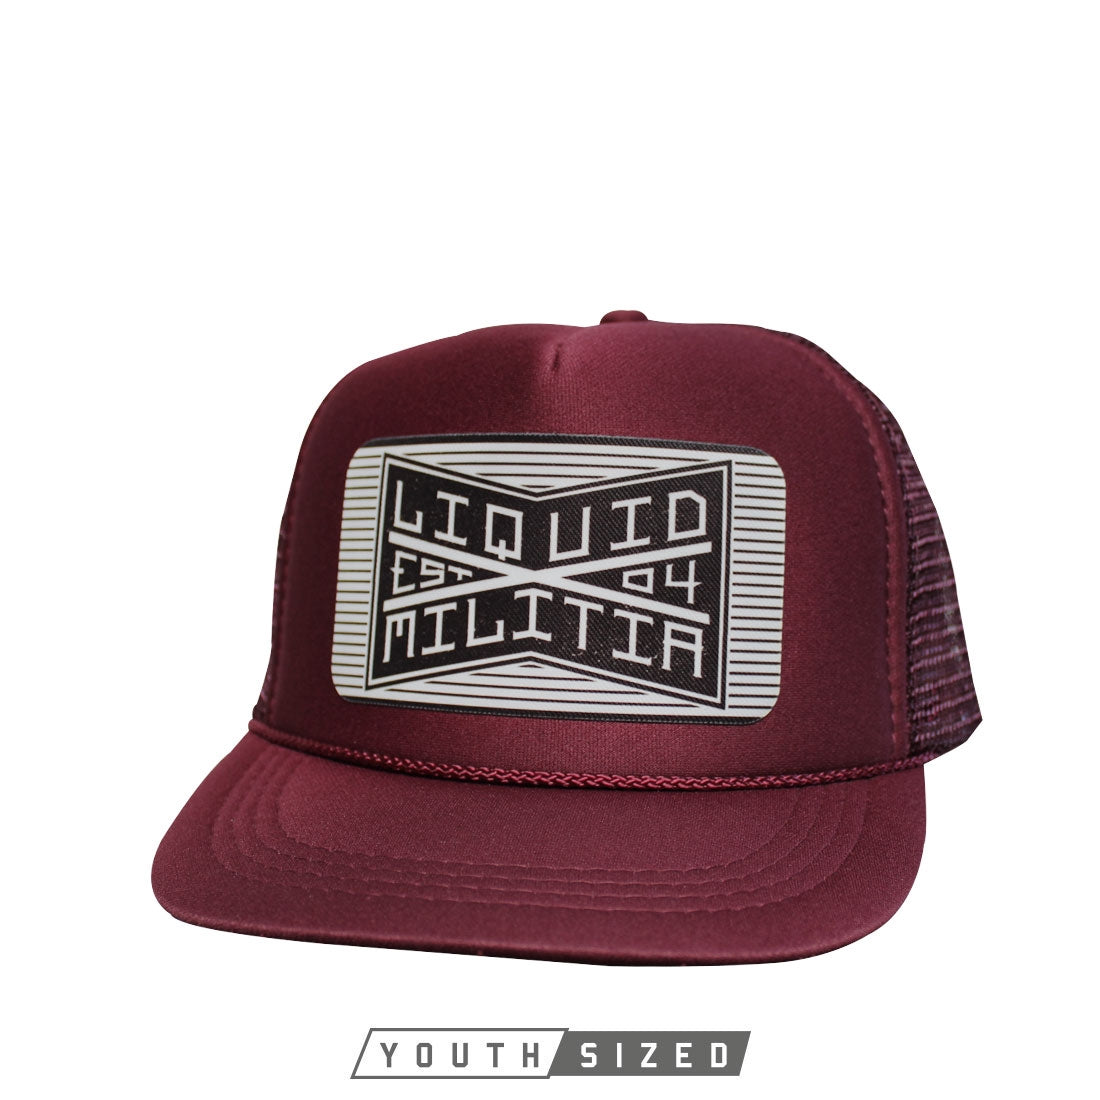 Bind Youth Curved Bill Trucker in Maroon - Front View